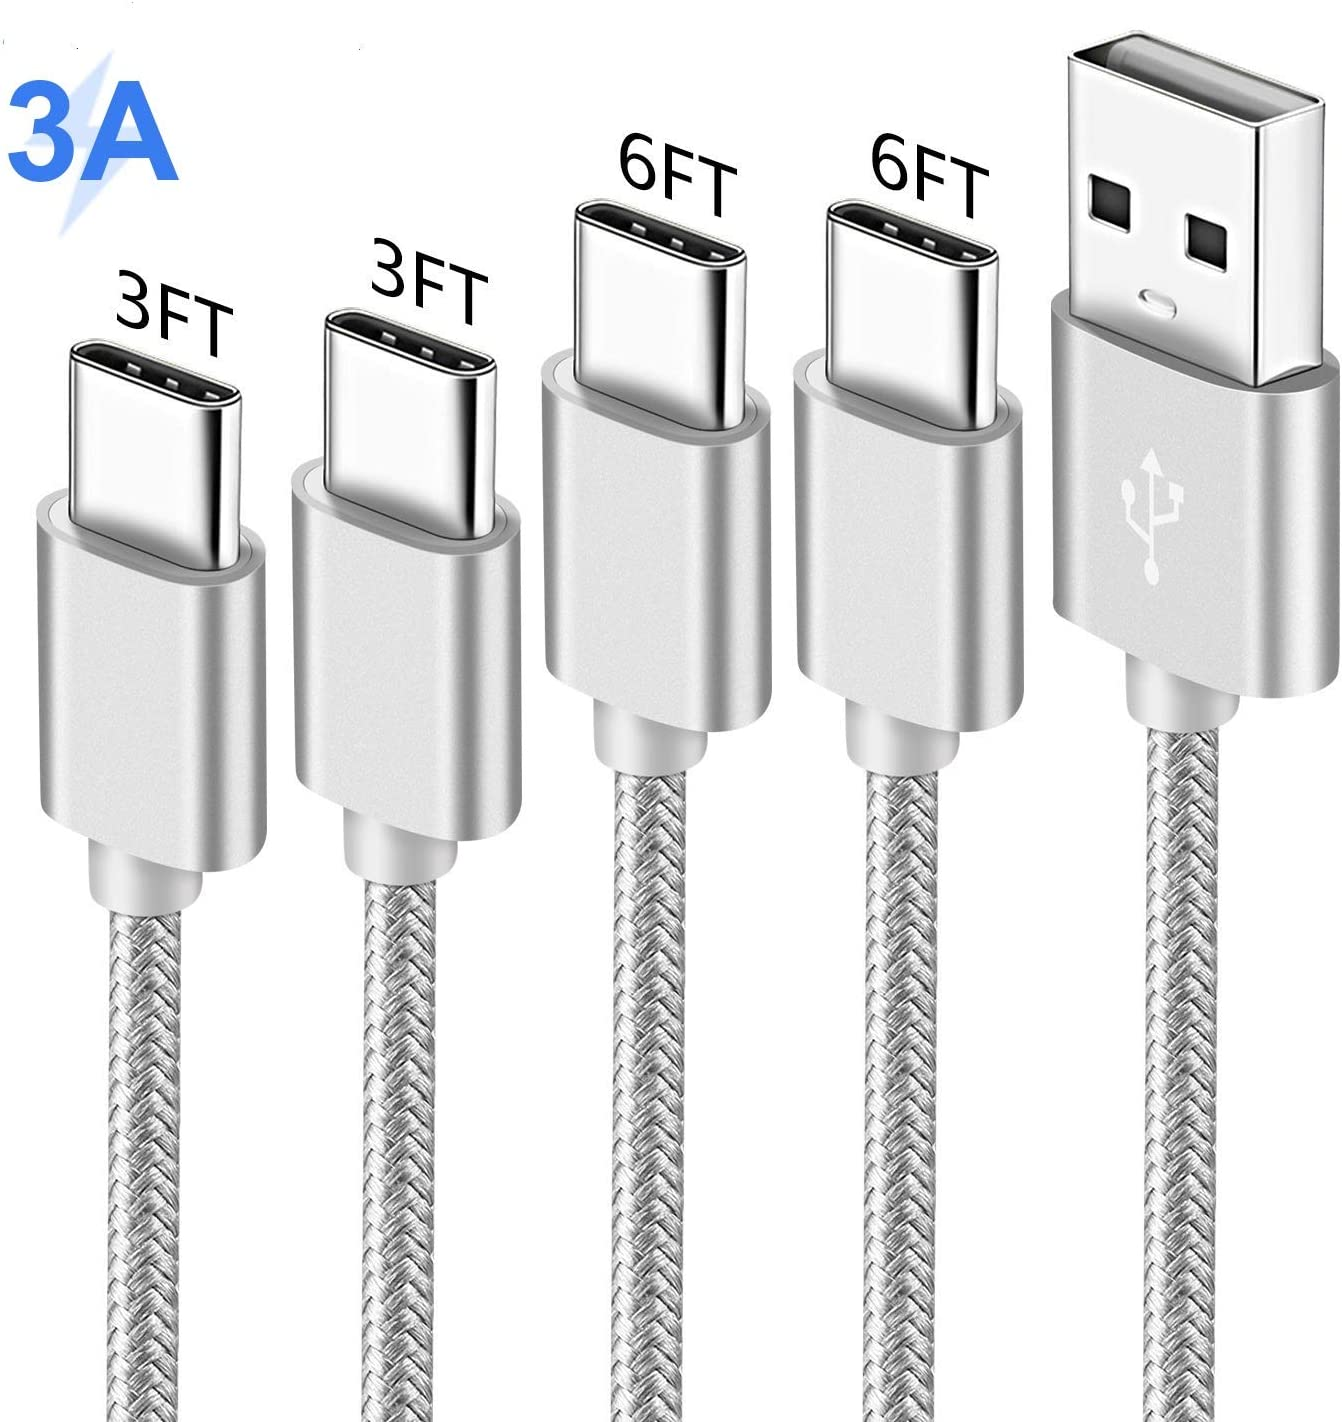 Charger Cord for LG V40 V35 Q7 G8 G7 Thinq G6 Stylo 4 5 Stylo5 Stylo4 V30S Plus,V30,V20,2018 iPad Pro,BlackBerry key2/Keyone,Fast Charge Power Cable,USB Type C Phone Charging Data Wire 3FT 6FT 4Pack